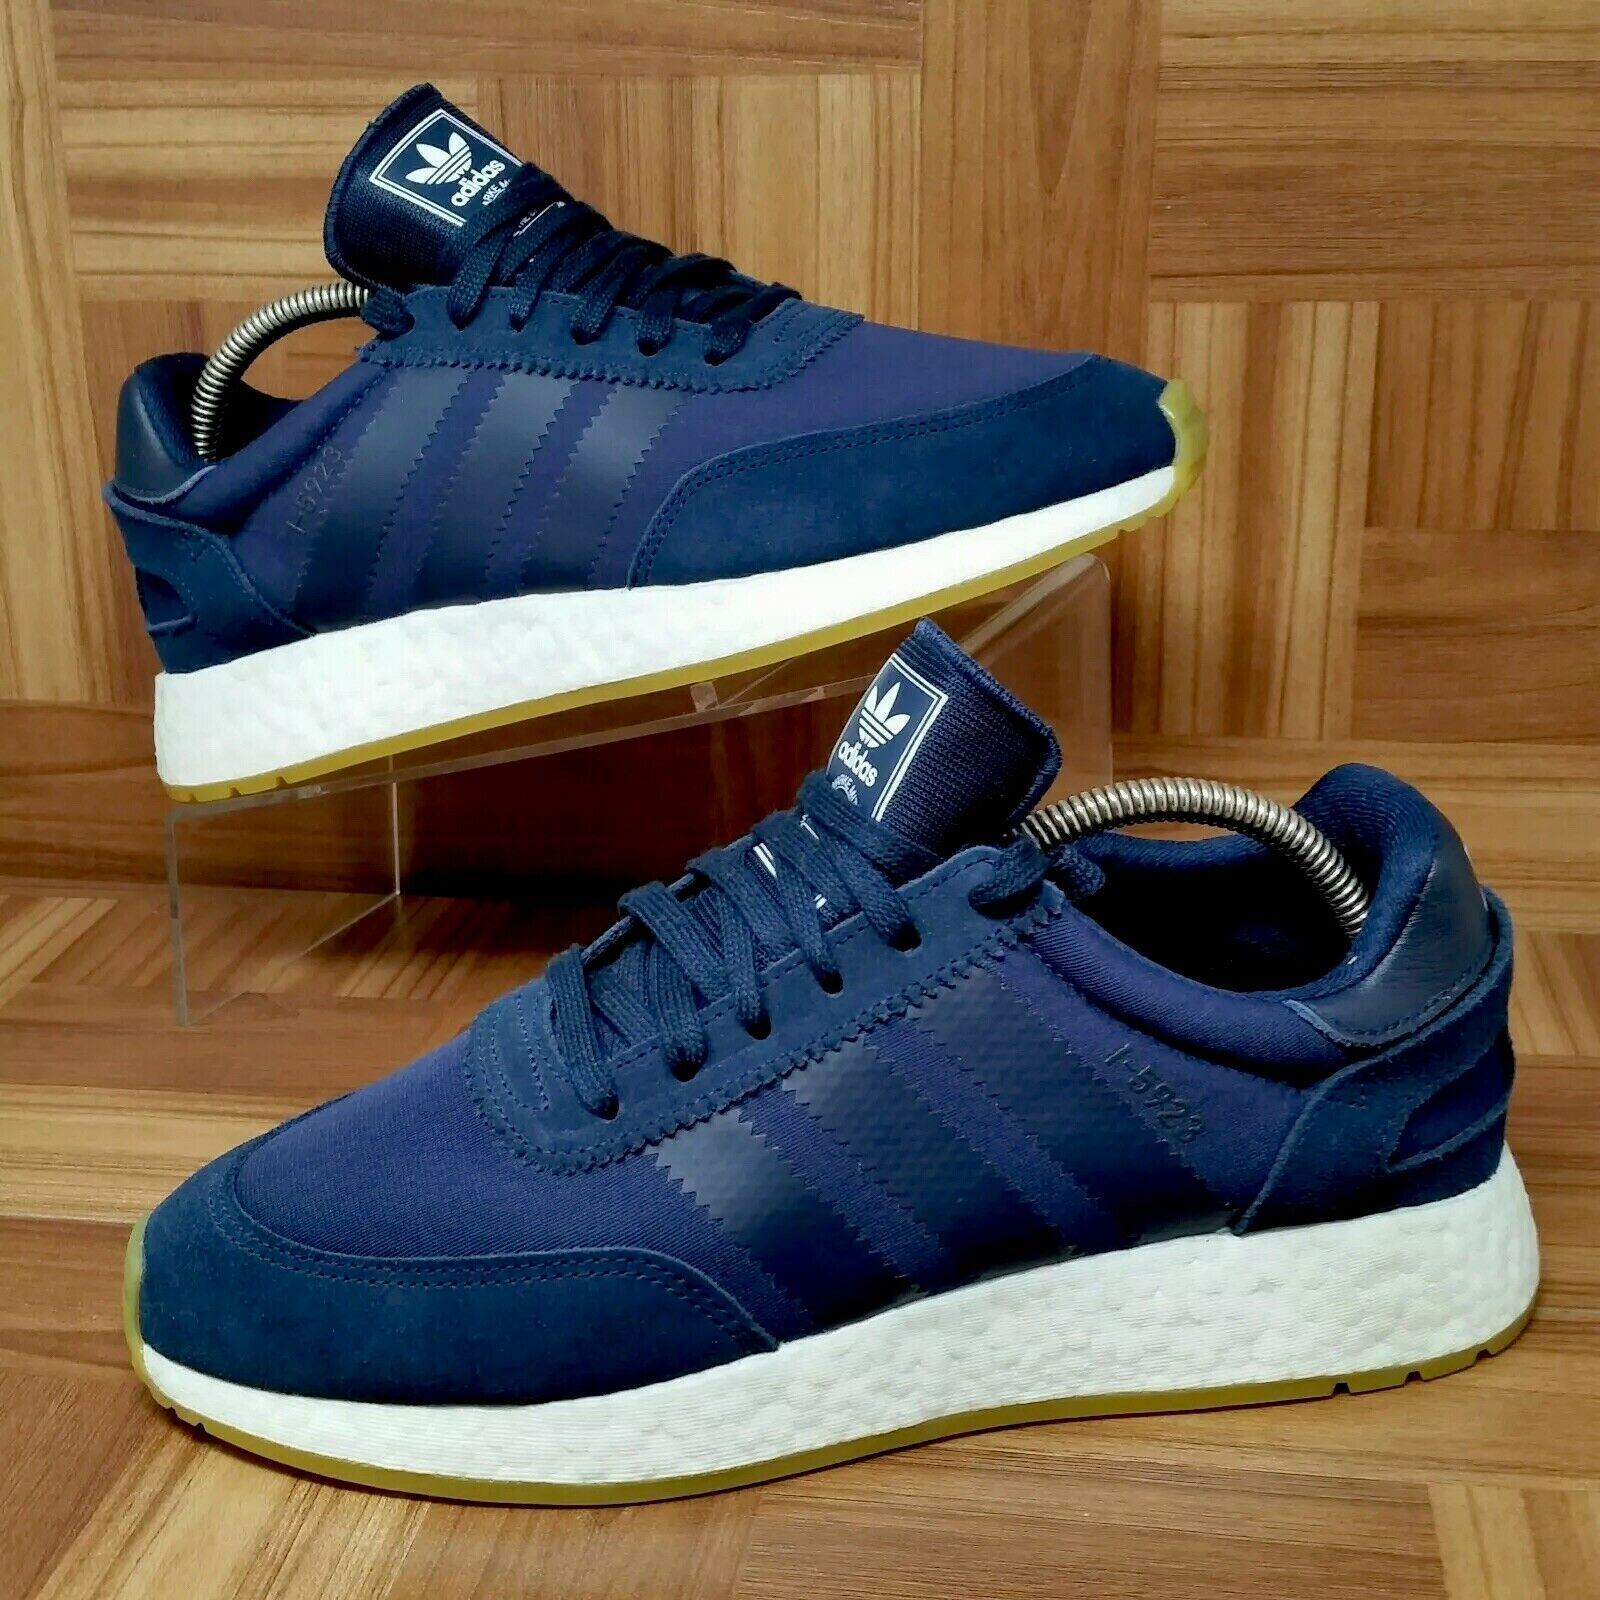 size 40 62e6d 85c60 NEW Adidas Boost (Men s Size 9) Athletic Sneaker Navy bluee NMD shoes Iniki  nfzivl2267-Athletic Shoes